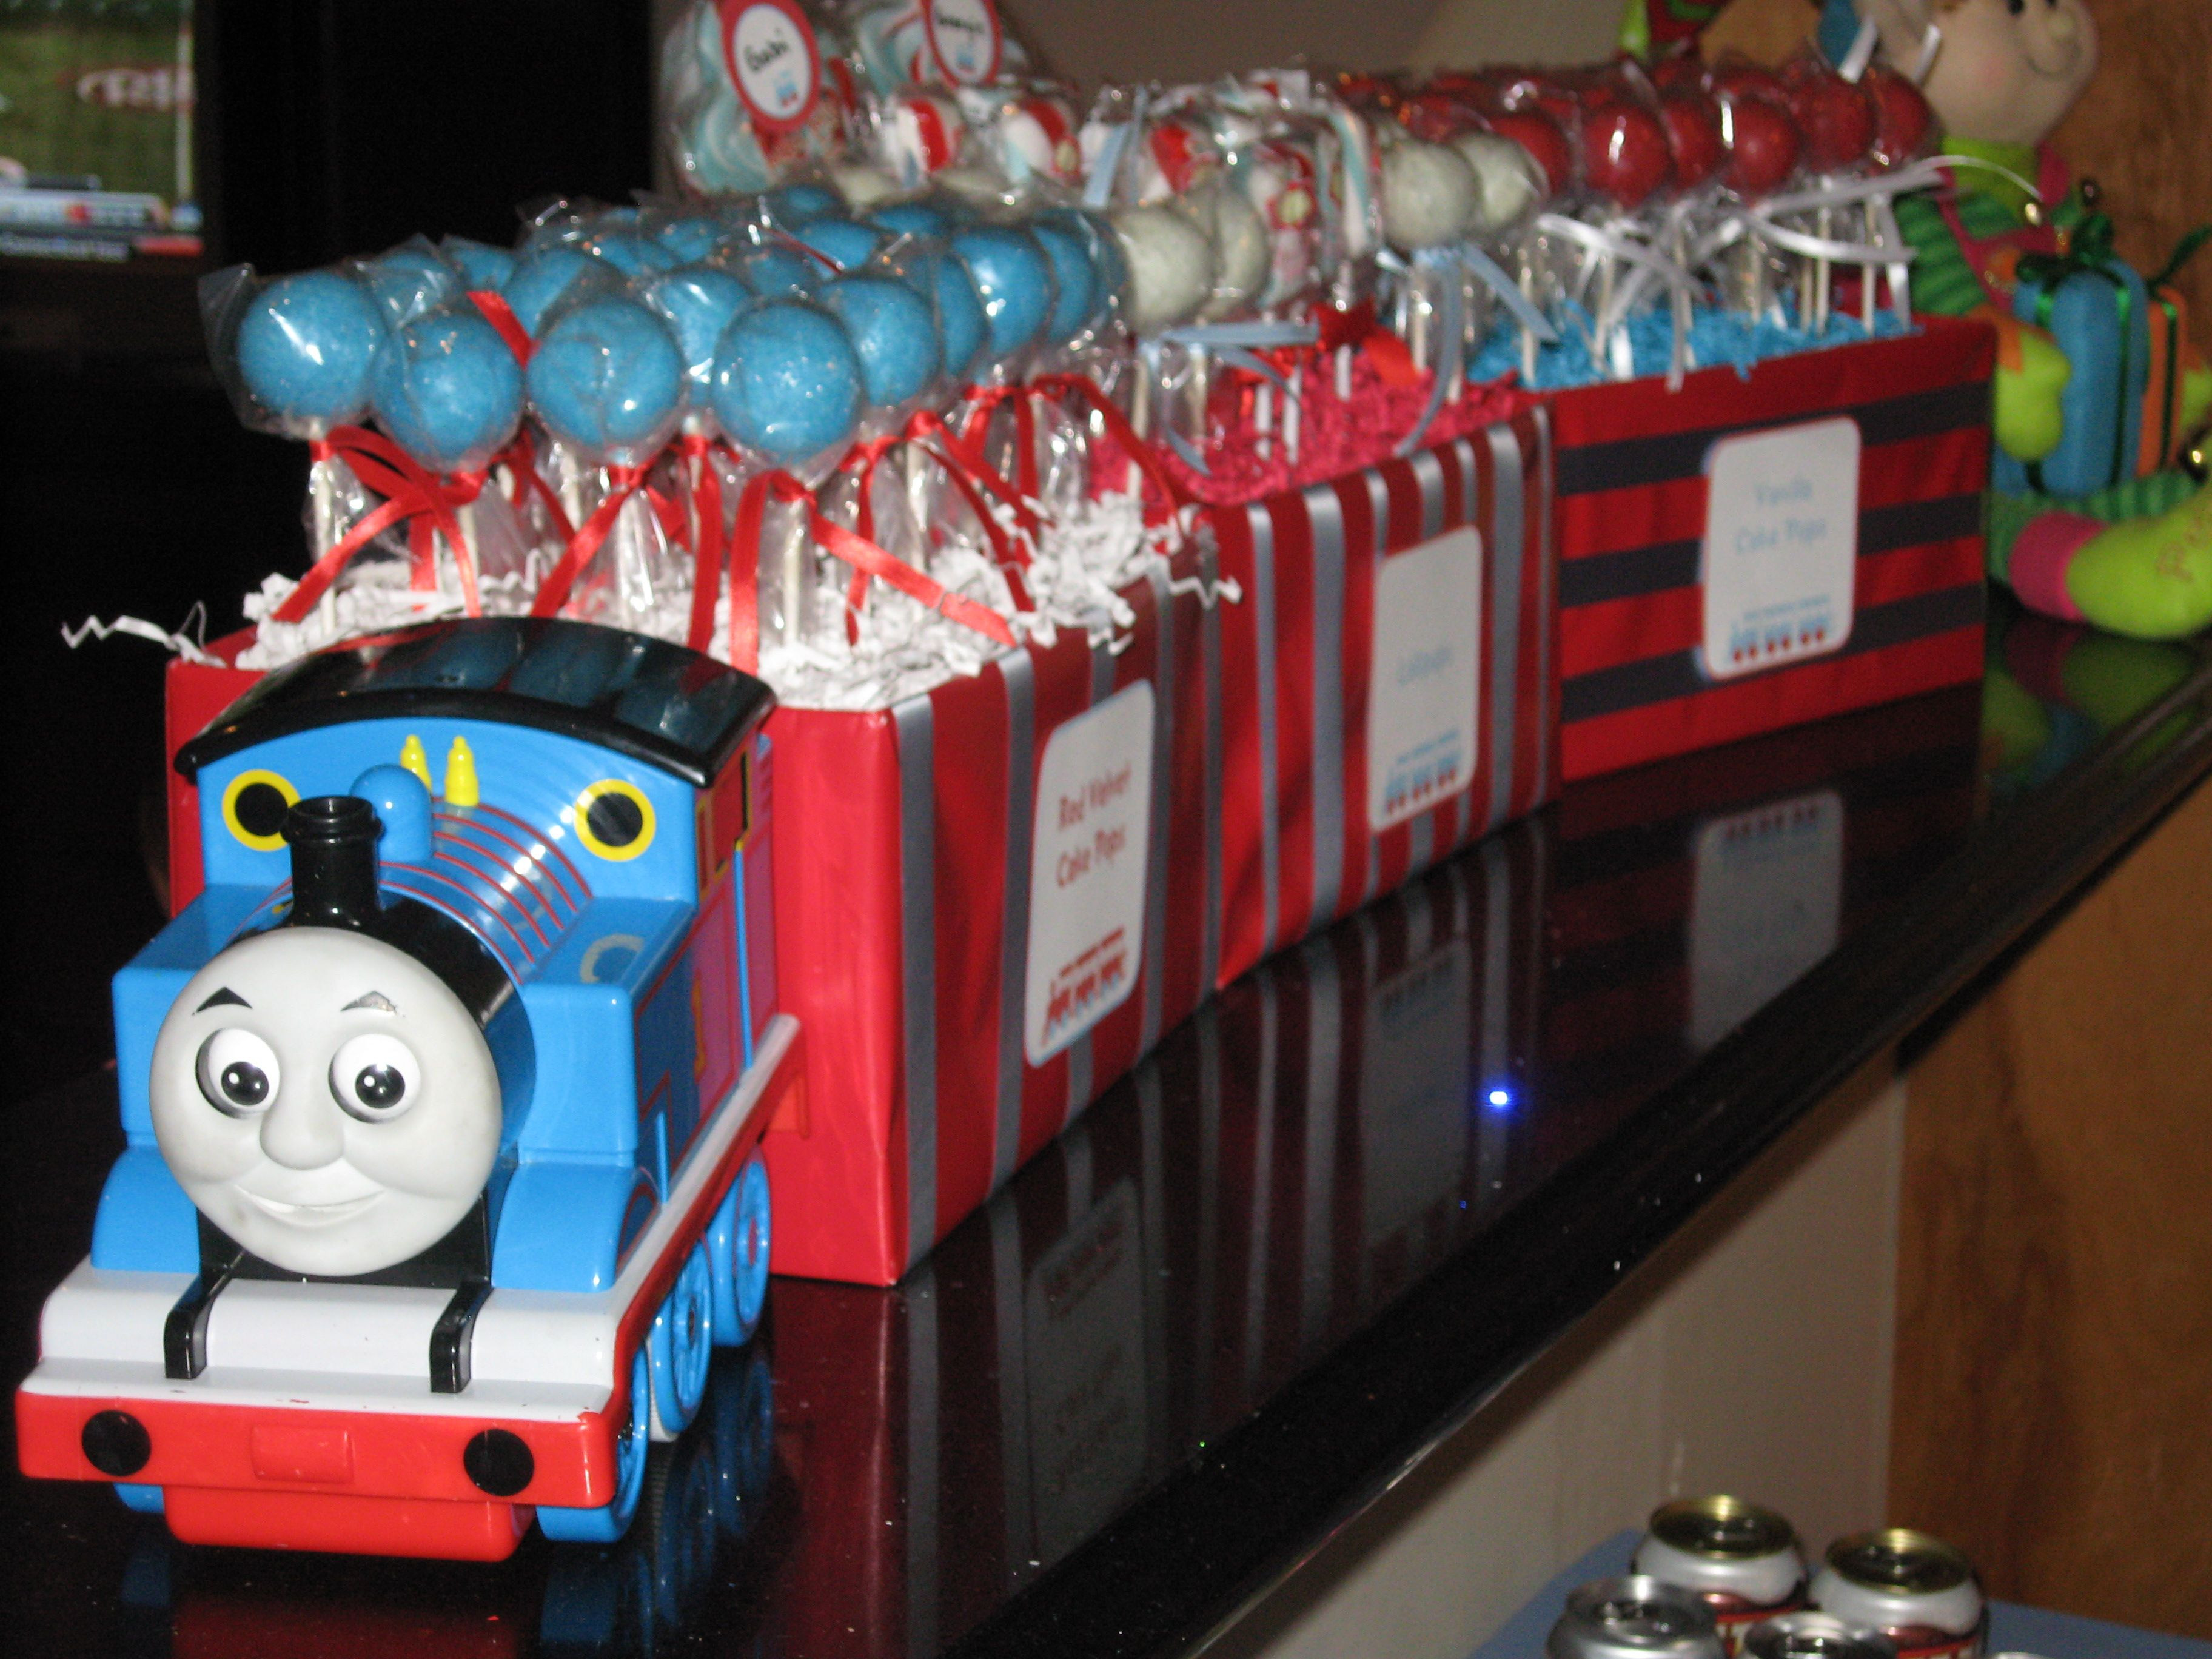 Best ideas about Thomas The Train Birthday Decorations . Save or Pin Kids Party Thomas the Tank trains on Pinterest Now.